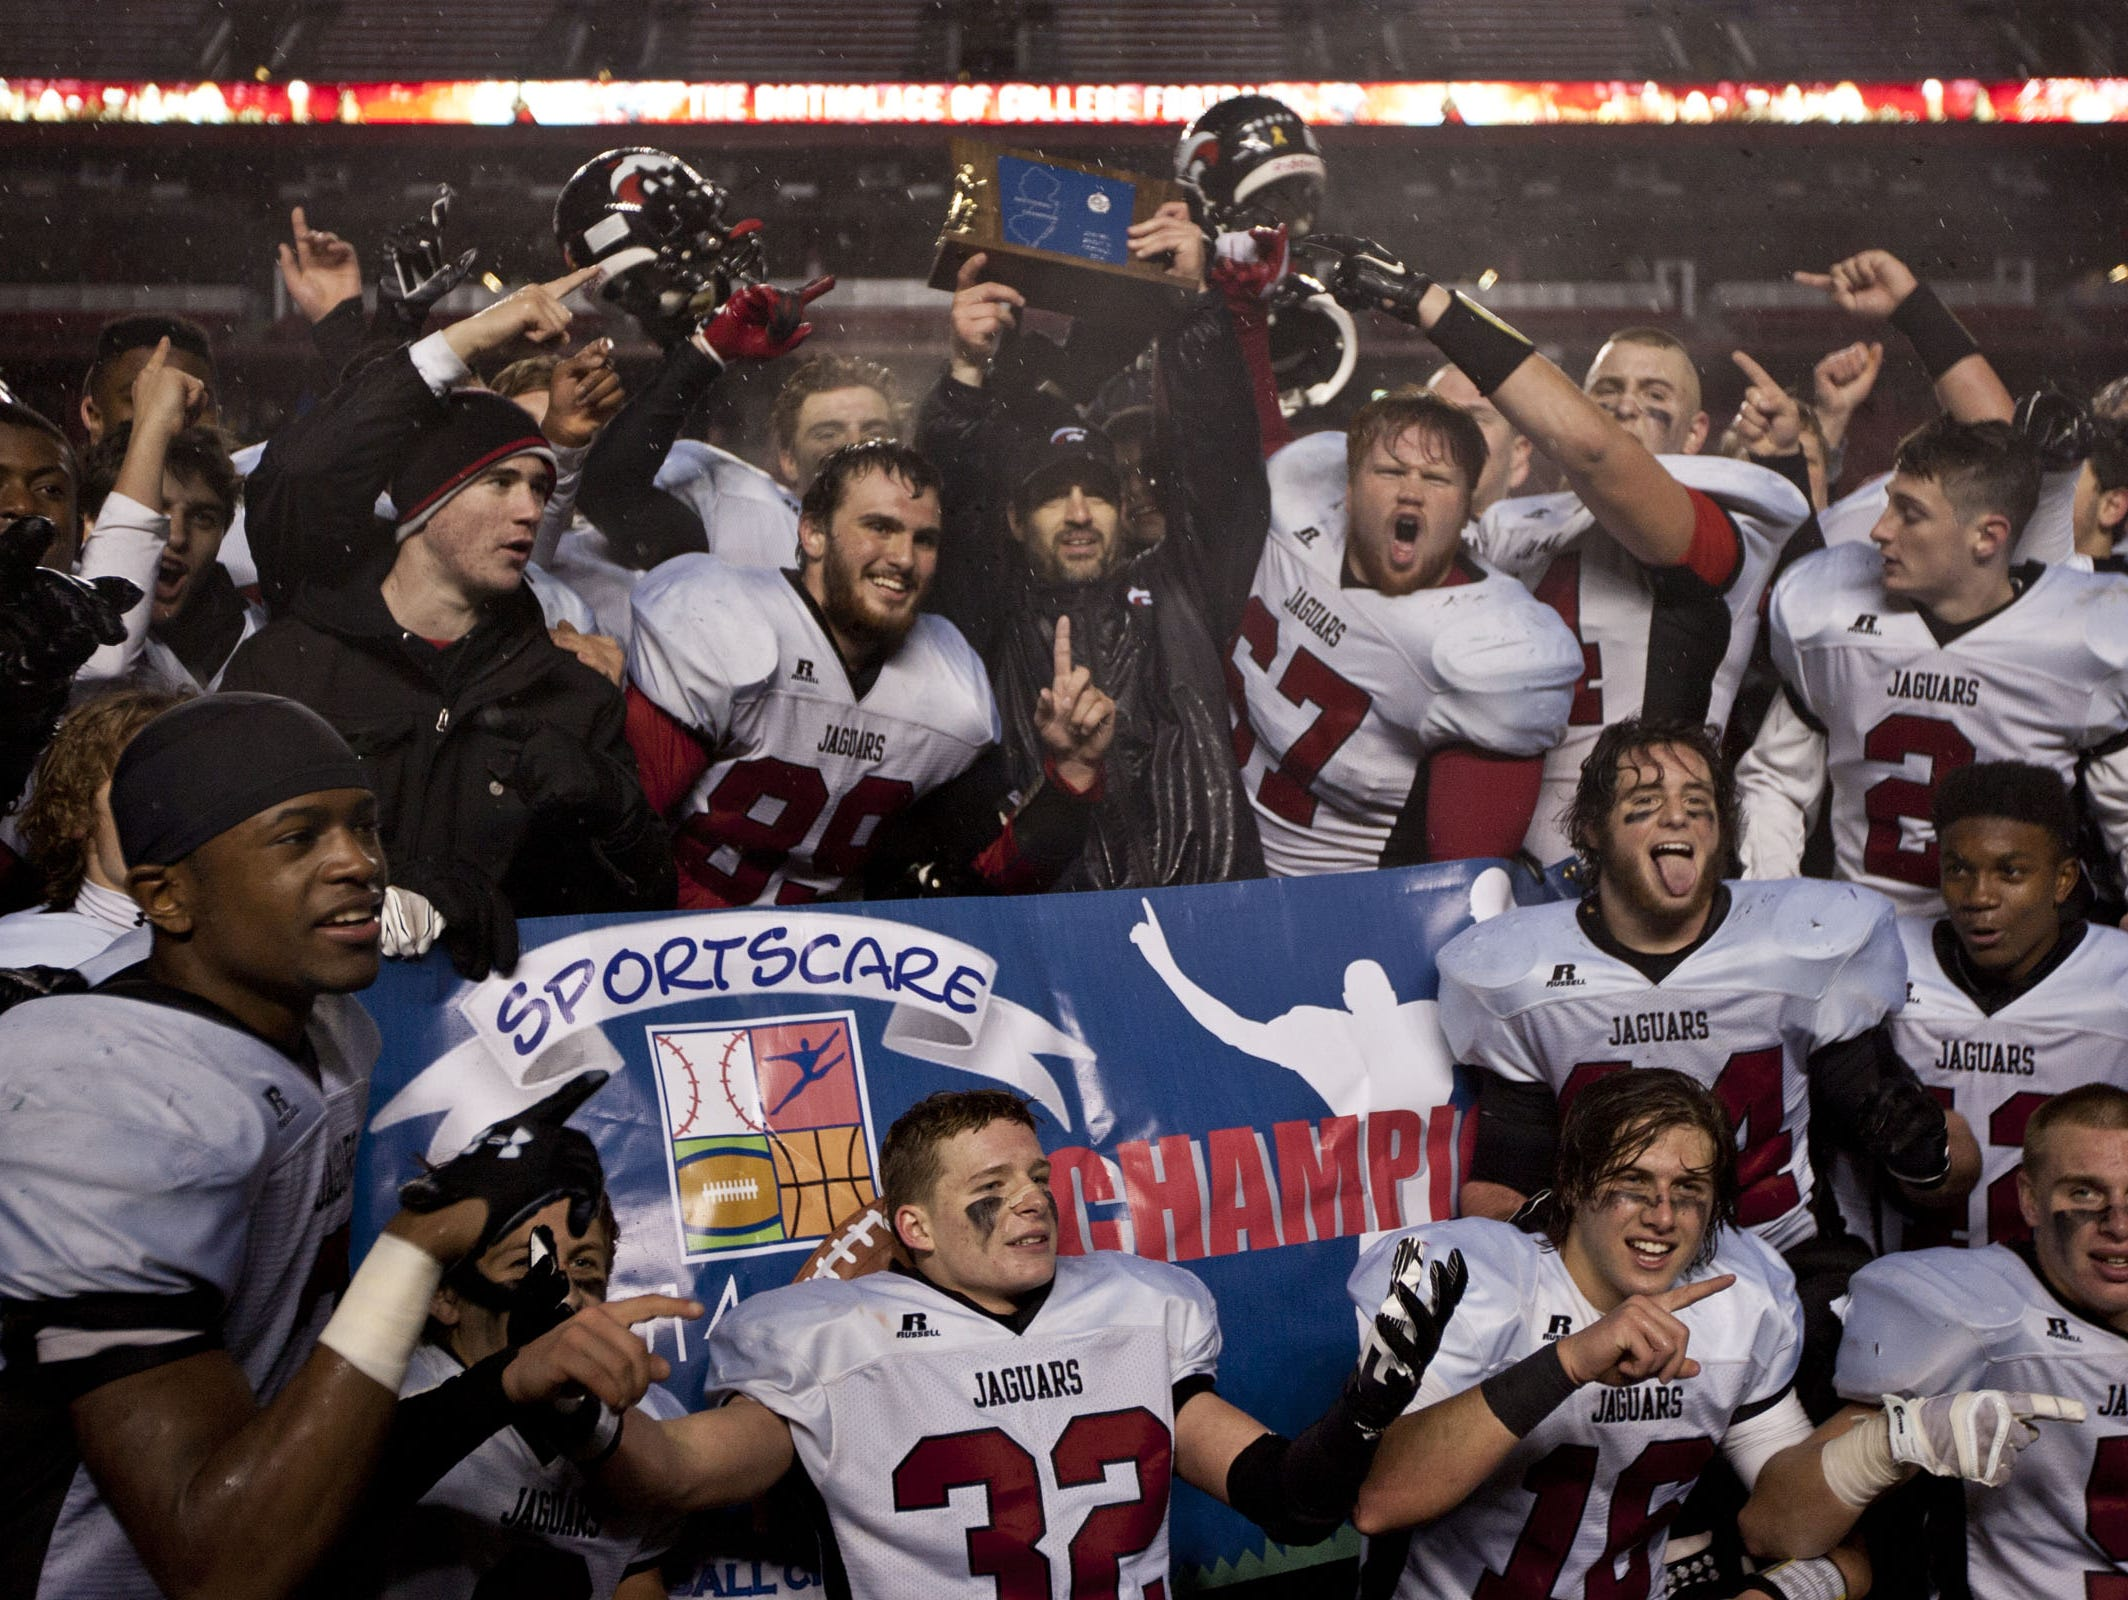 Jackson Memorial players and coaches celebrate after their win over Middletown South in the 2014 CJ Group IV championship game at Rutgers.